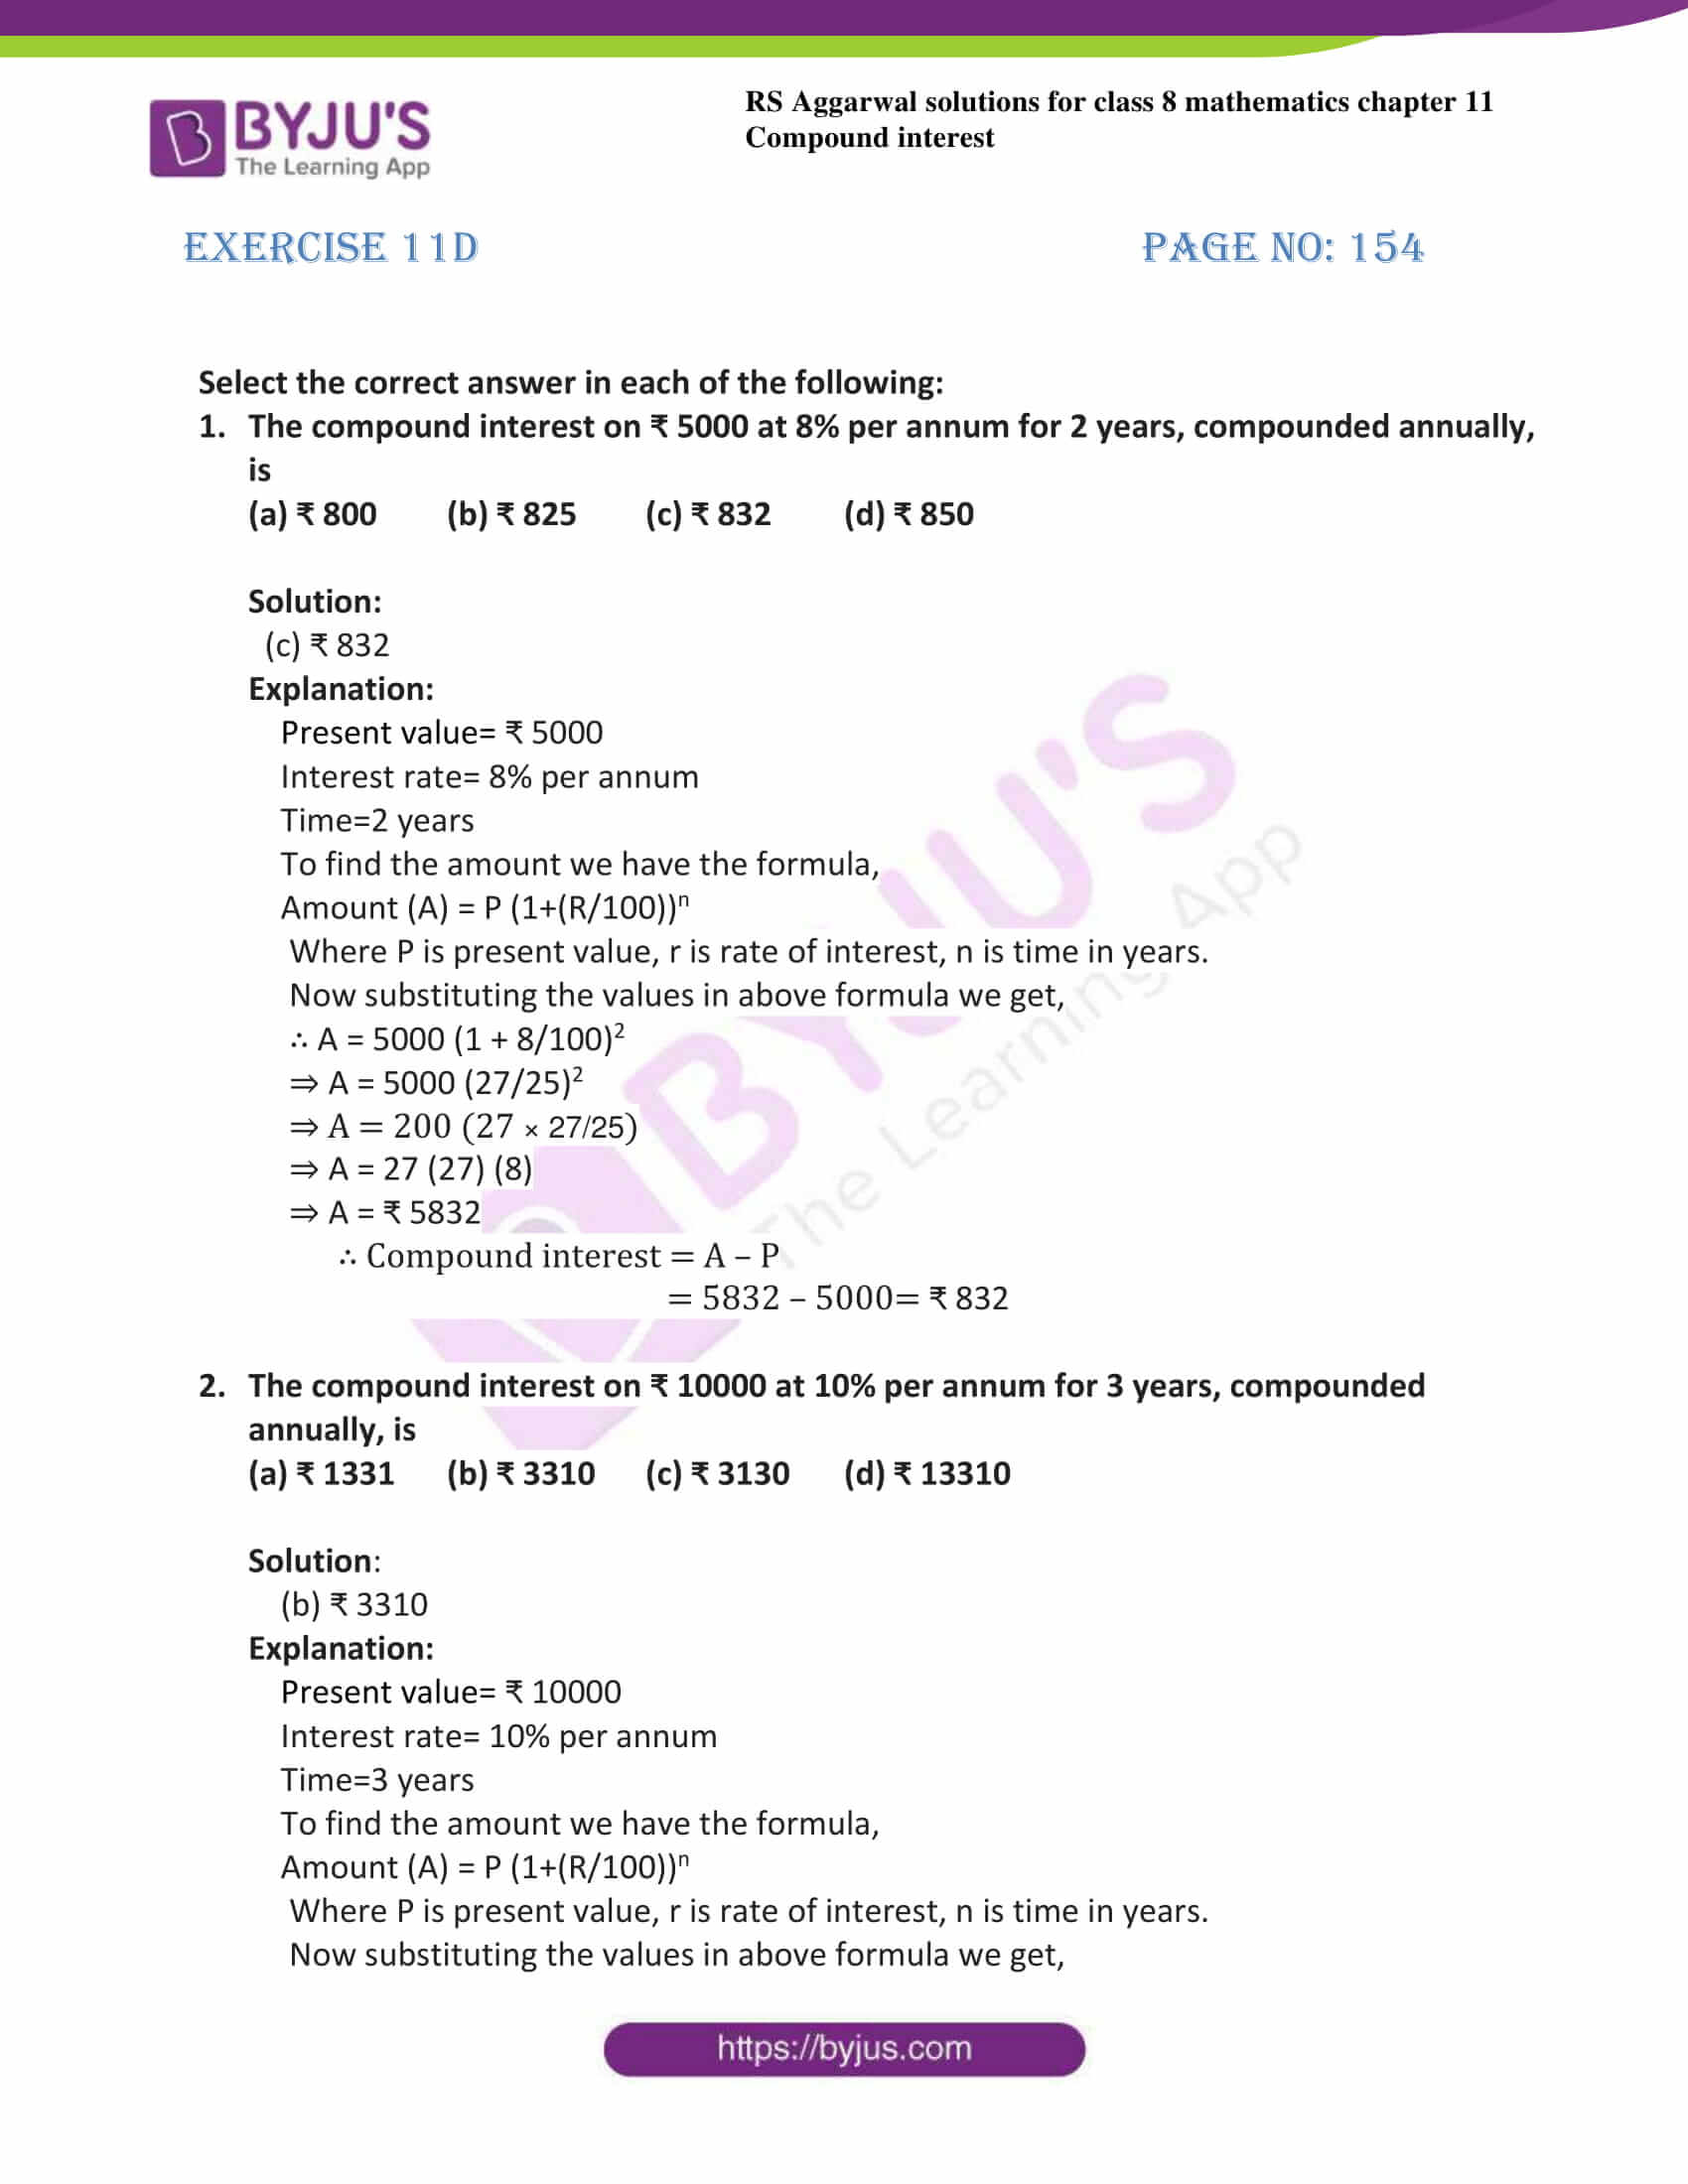 Rs Aggarwal Solutions For Class 8 Chapter 11